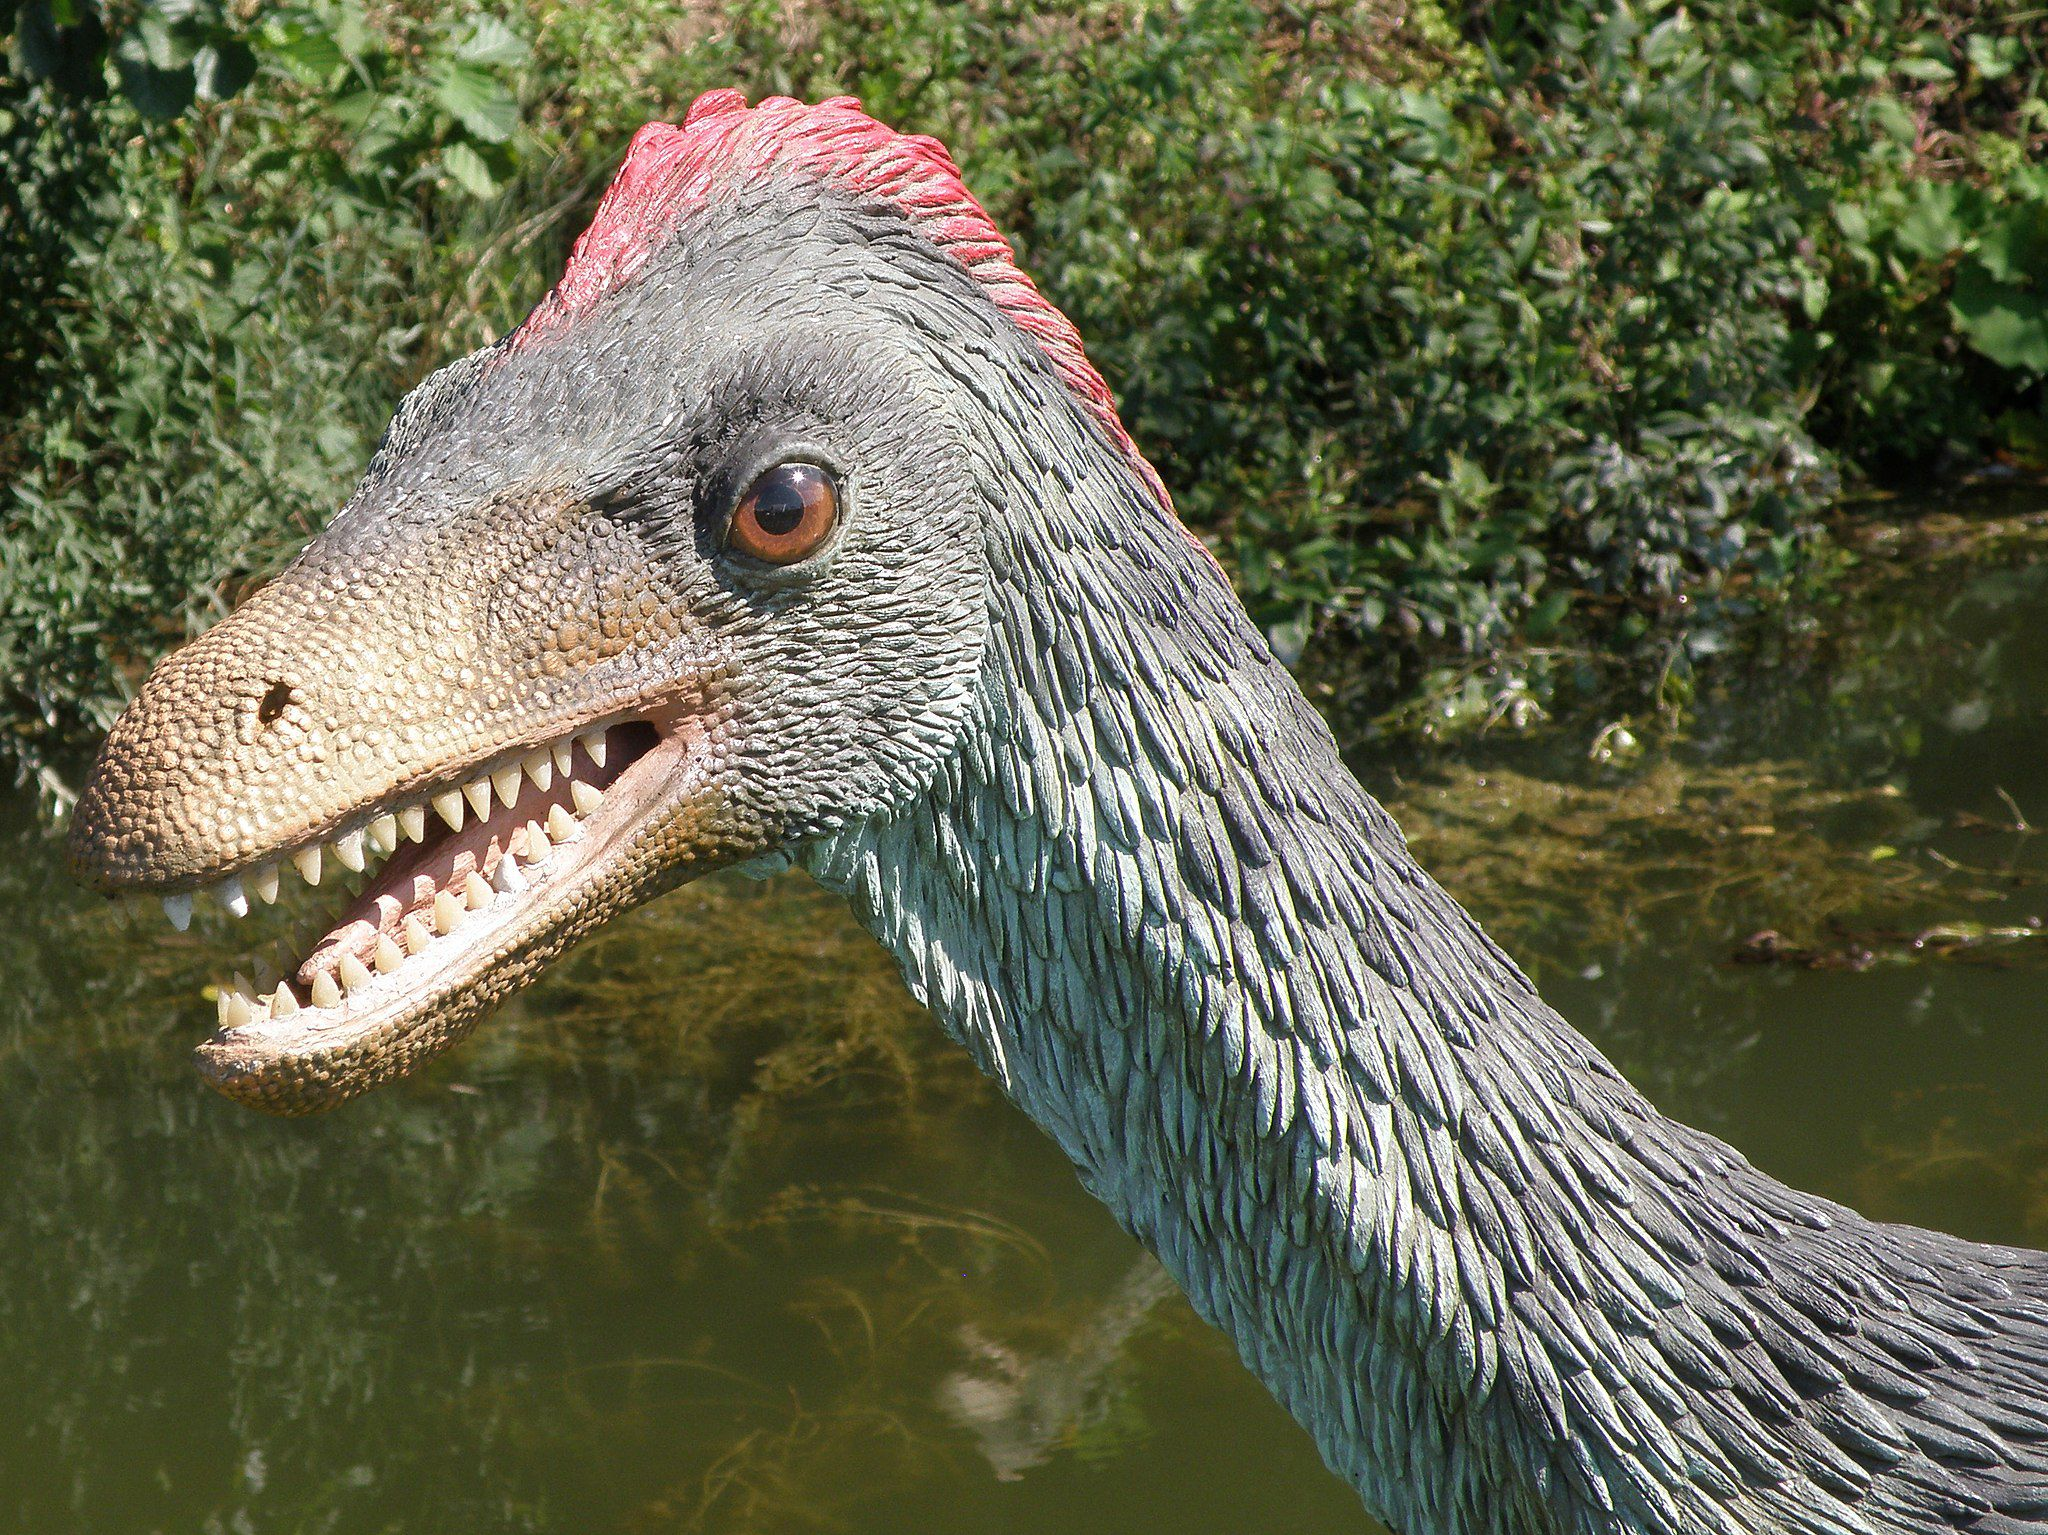 Model of a gray feathered <i>Troodon</i> with red comb on top of its head